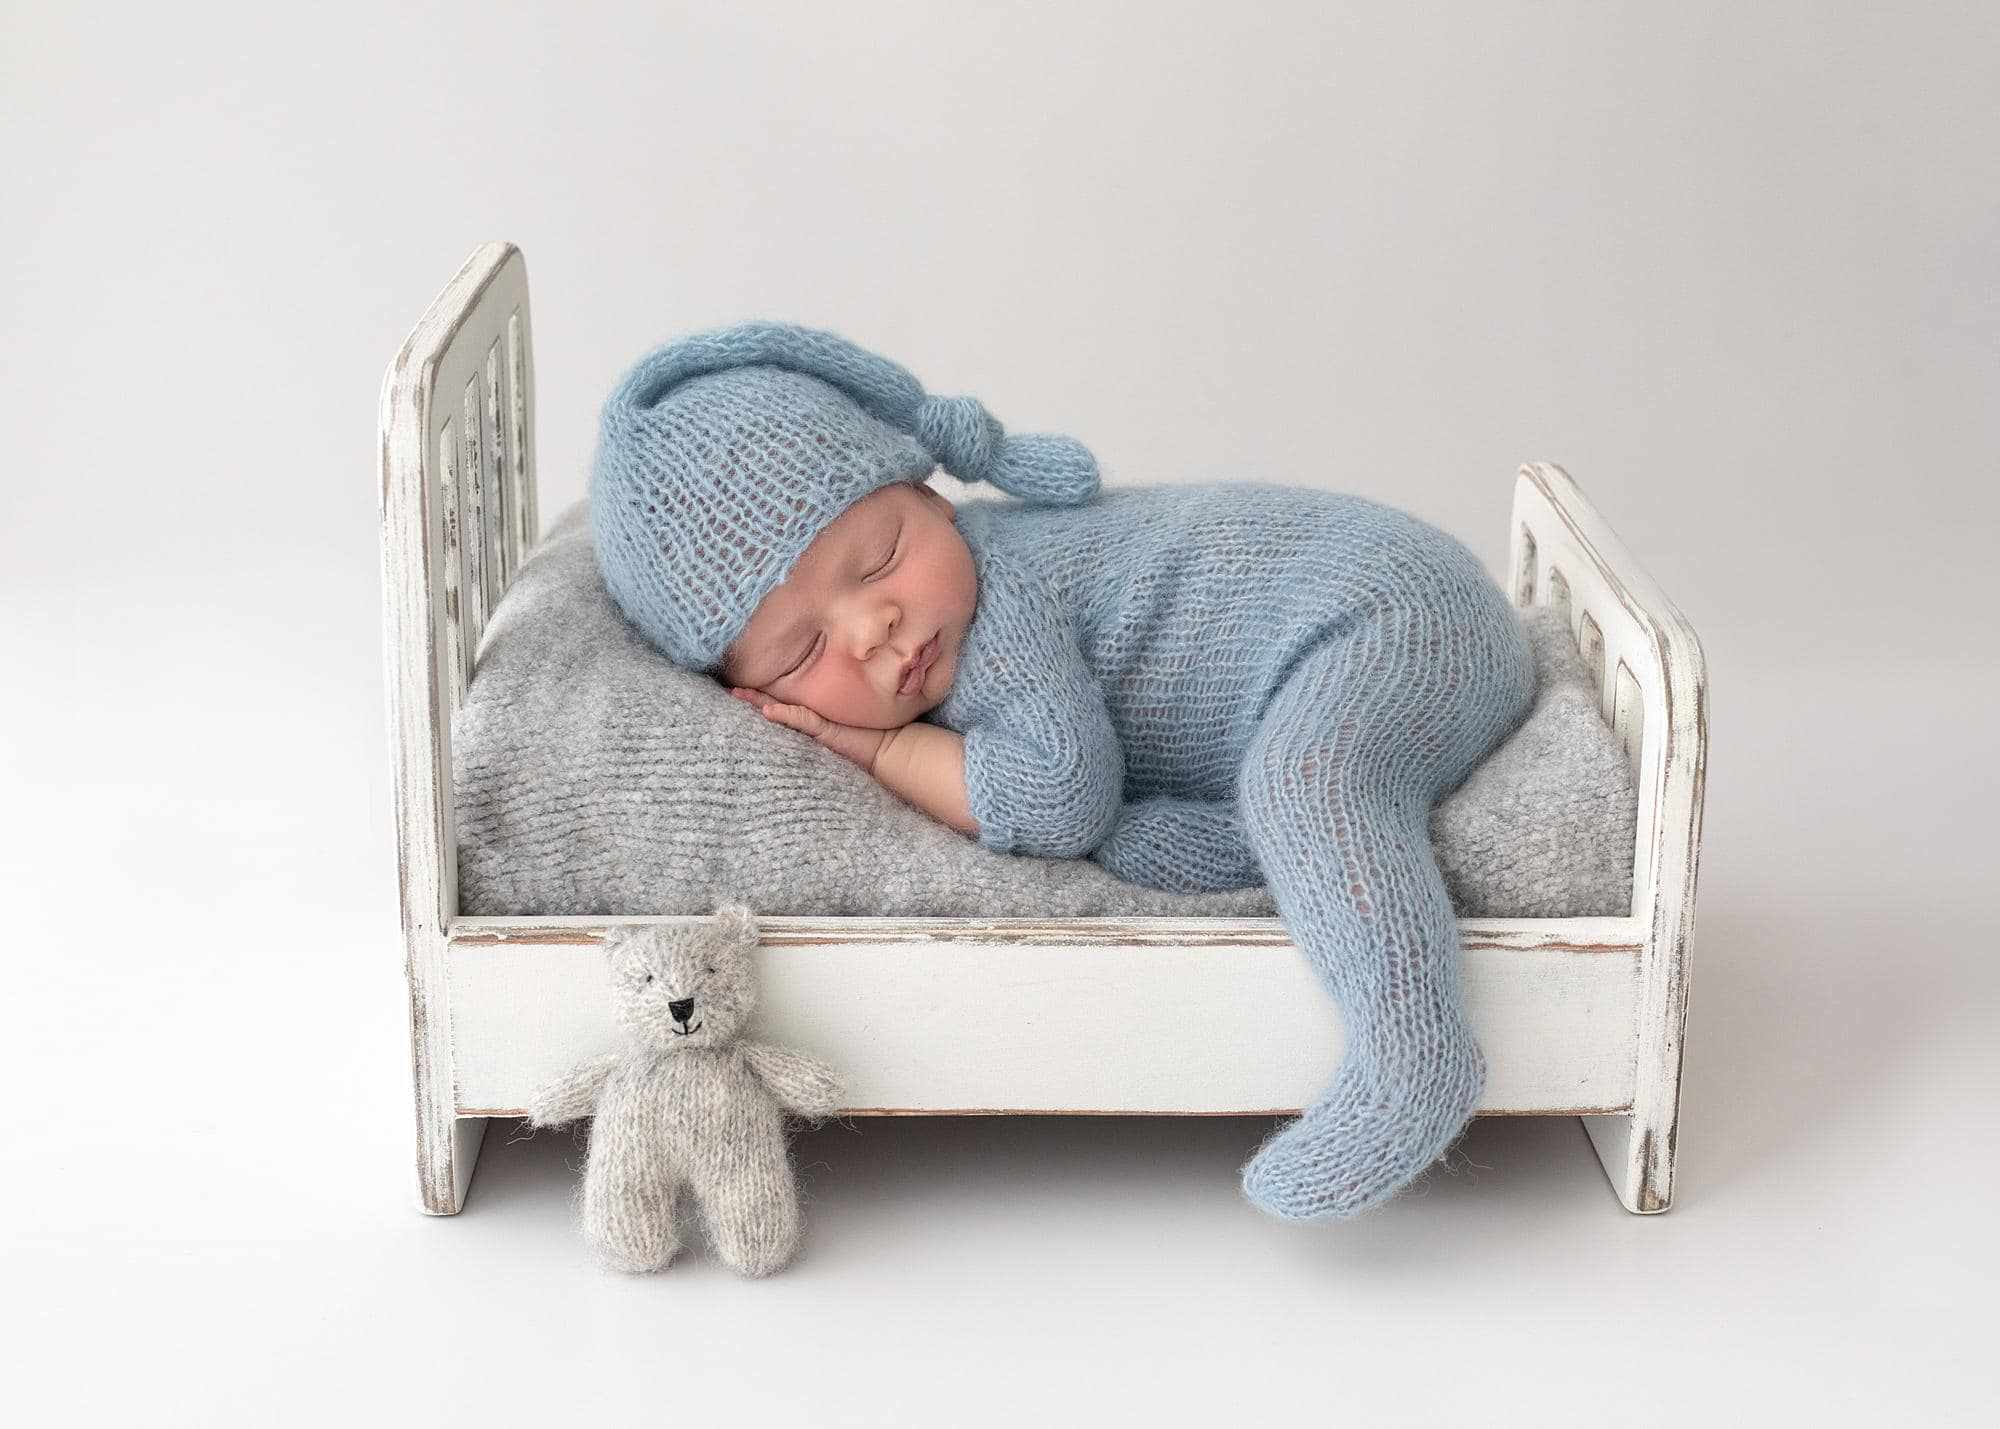 Newborn boy in blue romper and hat asleep on a little white bed during Newborn Shoot in Suffolk